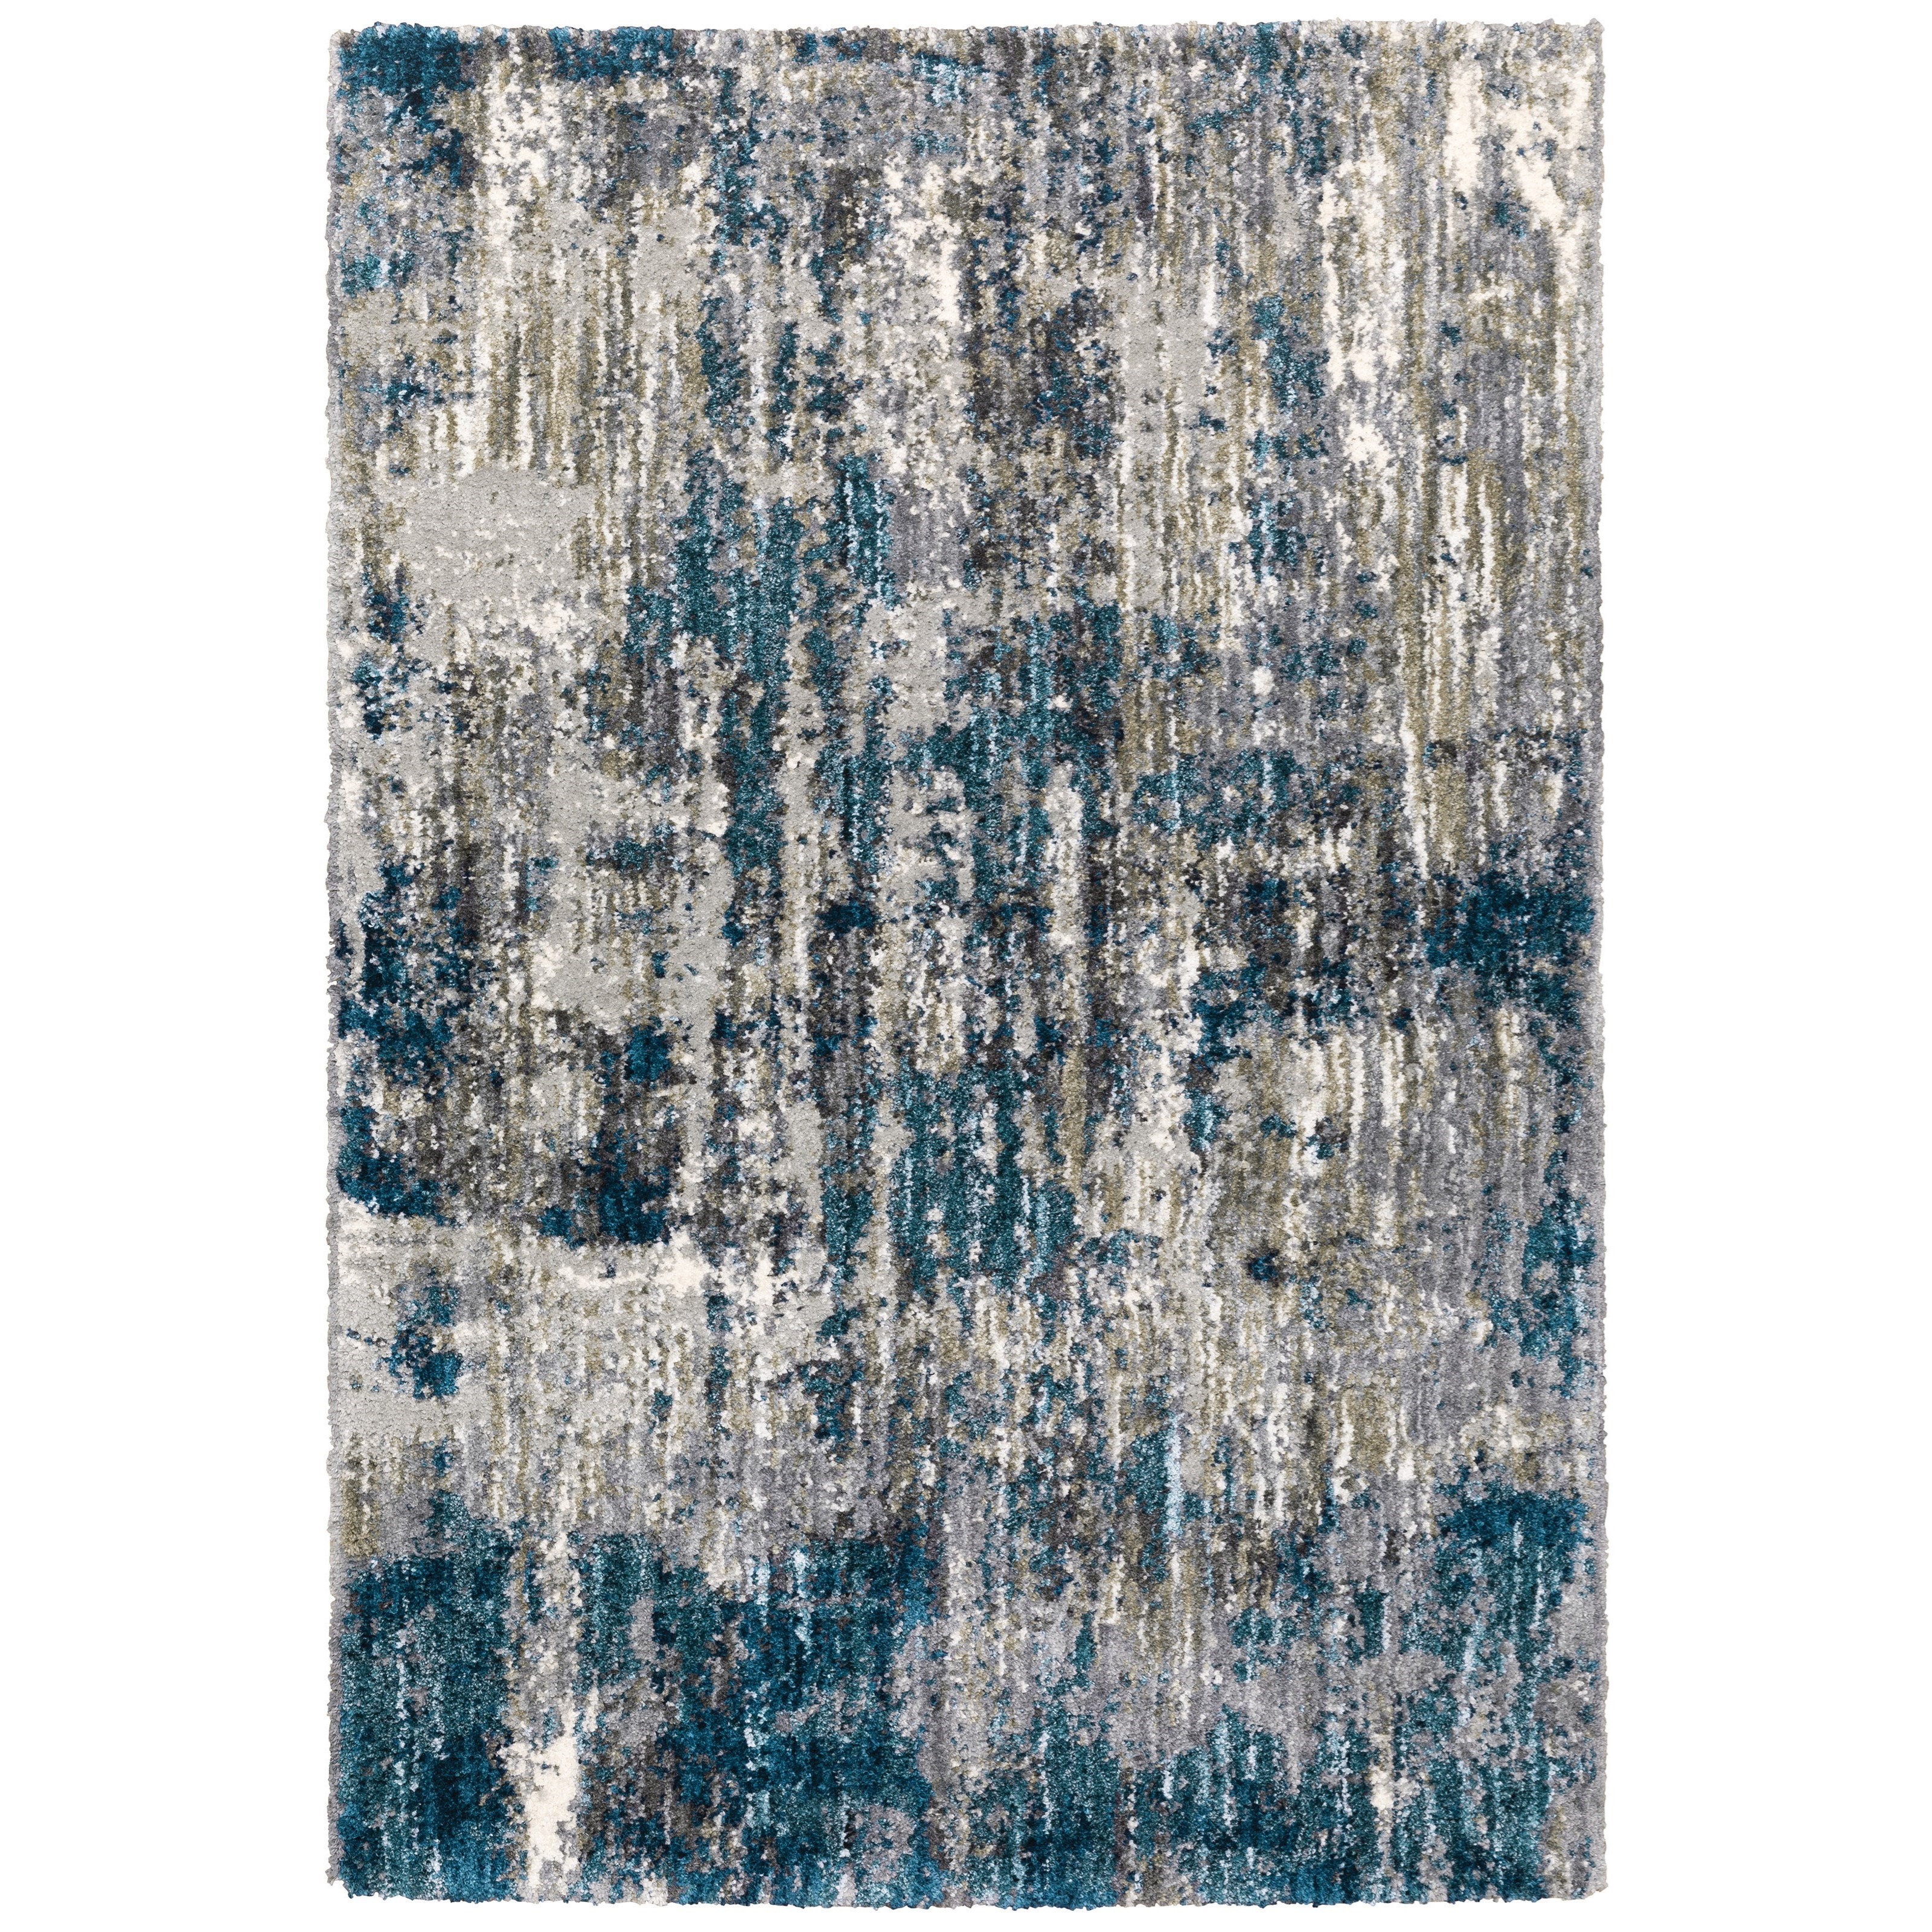 "ASPEN 9'10"" X 12'10"" Rectangle Rug by Oriental Weavers at Godby Home Furnishings"